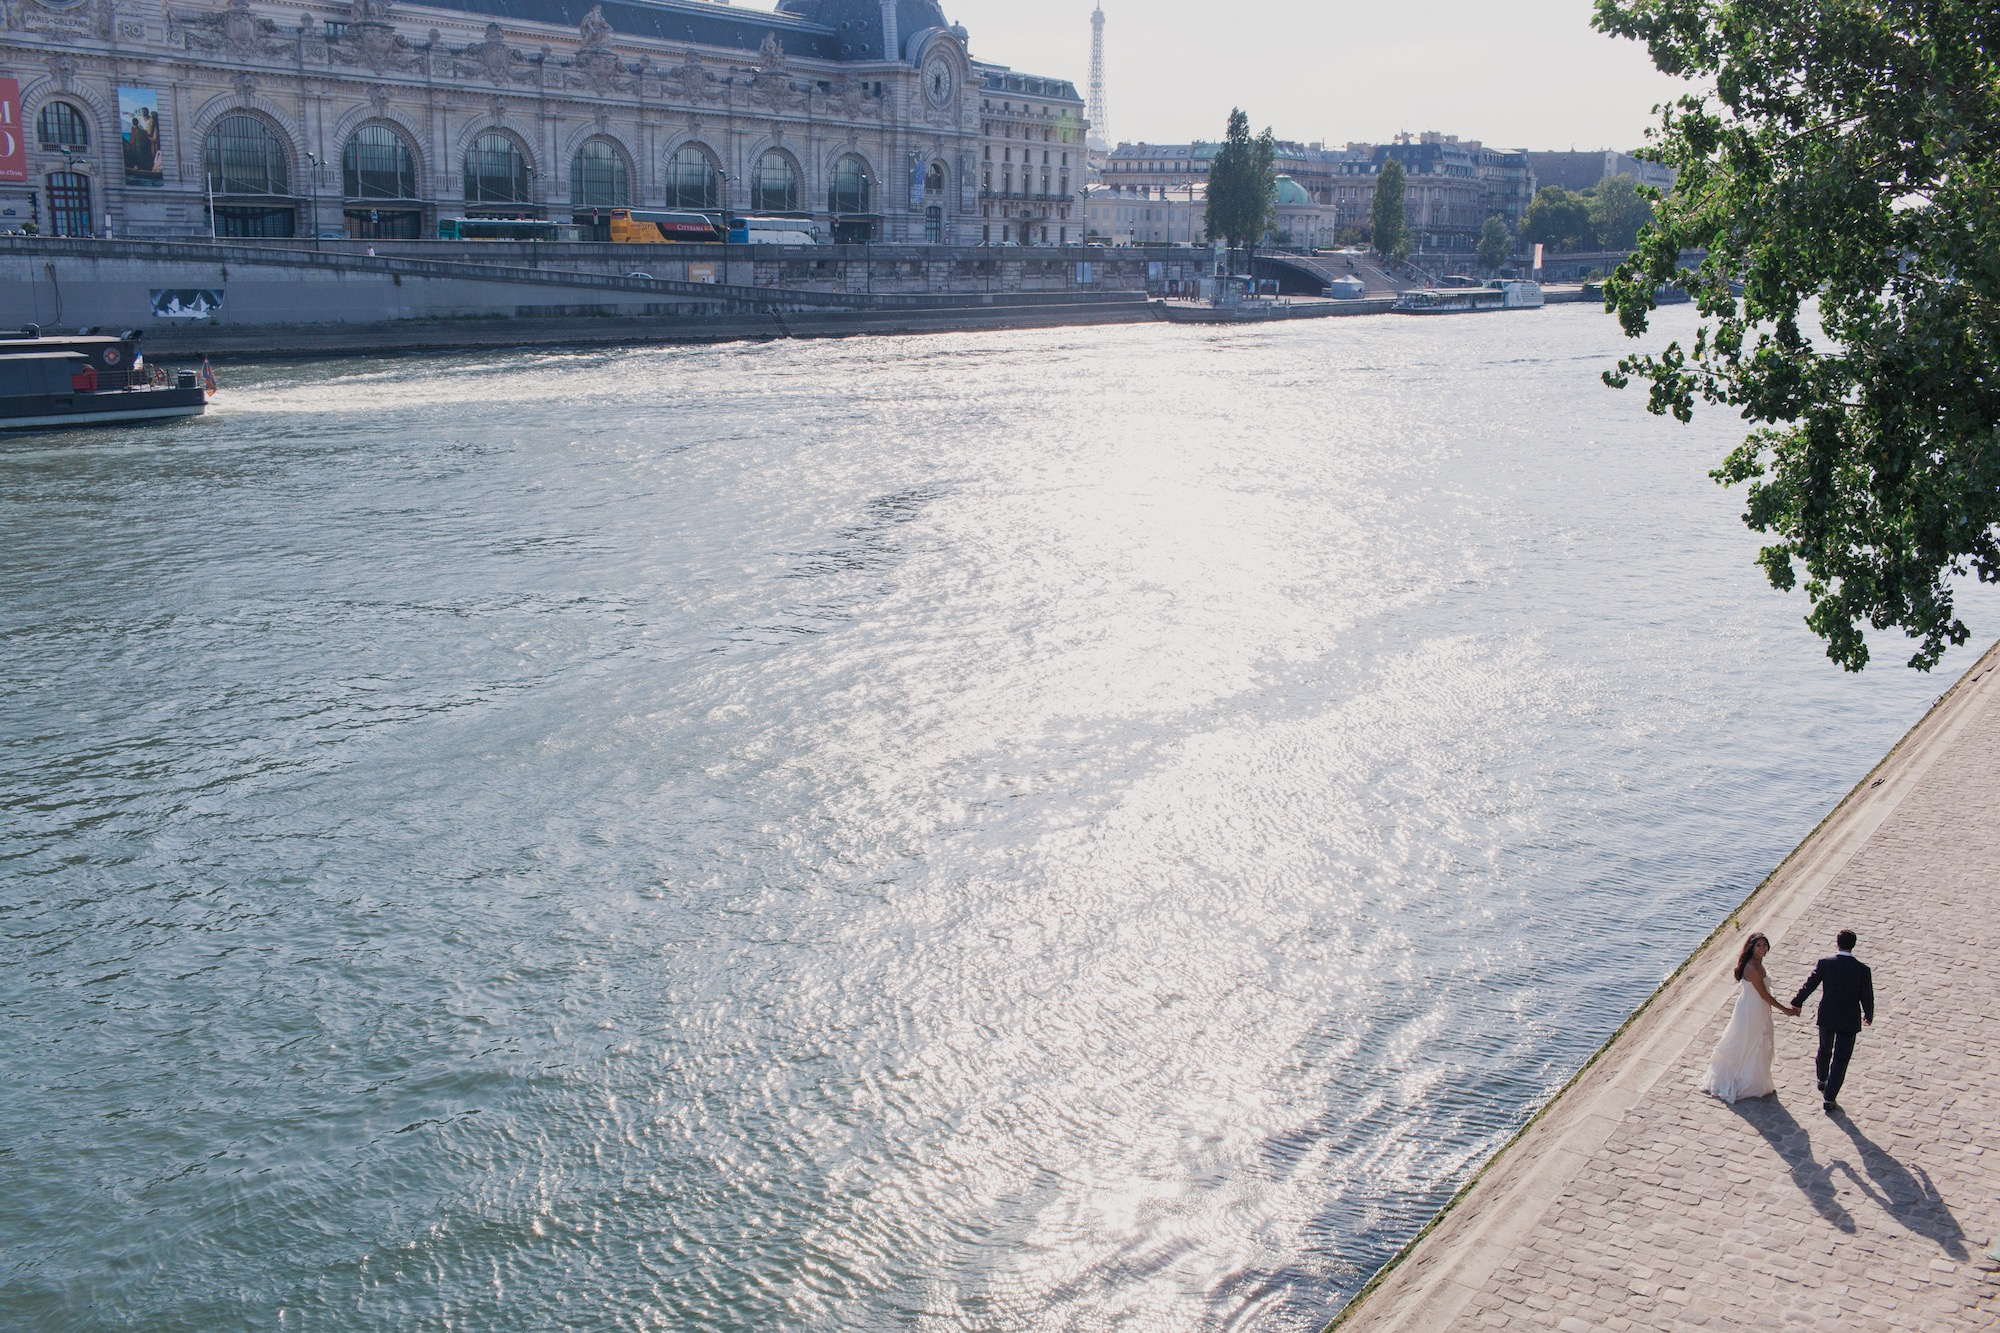 What is it like to live in Paris beyond Instagram? The River Seine and a newly married couple strolling along its banks.